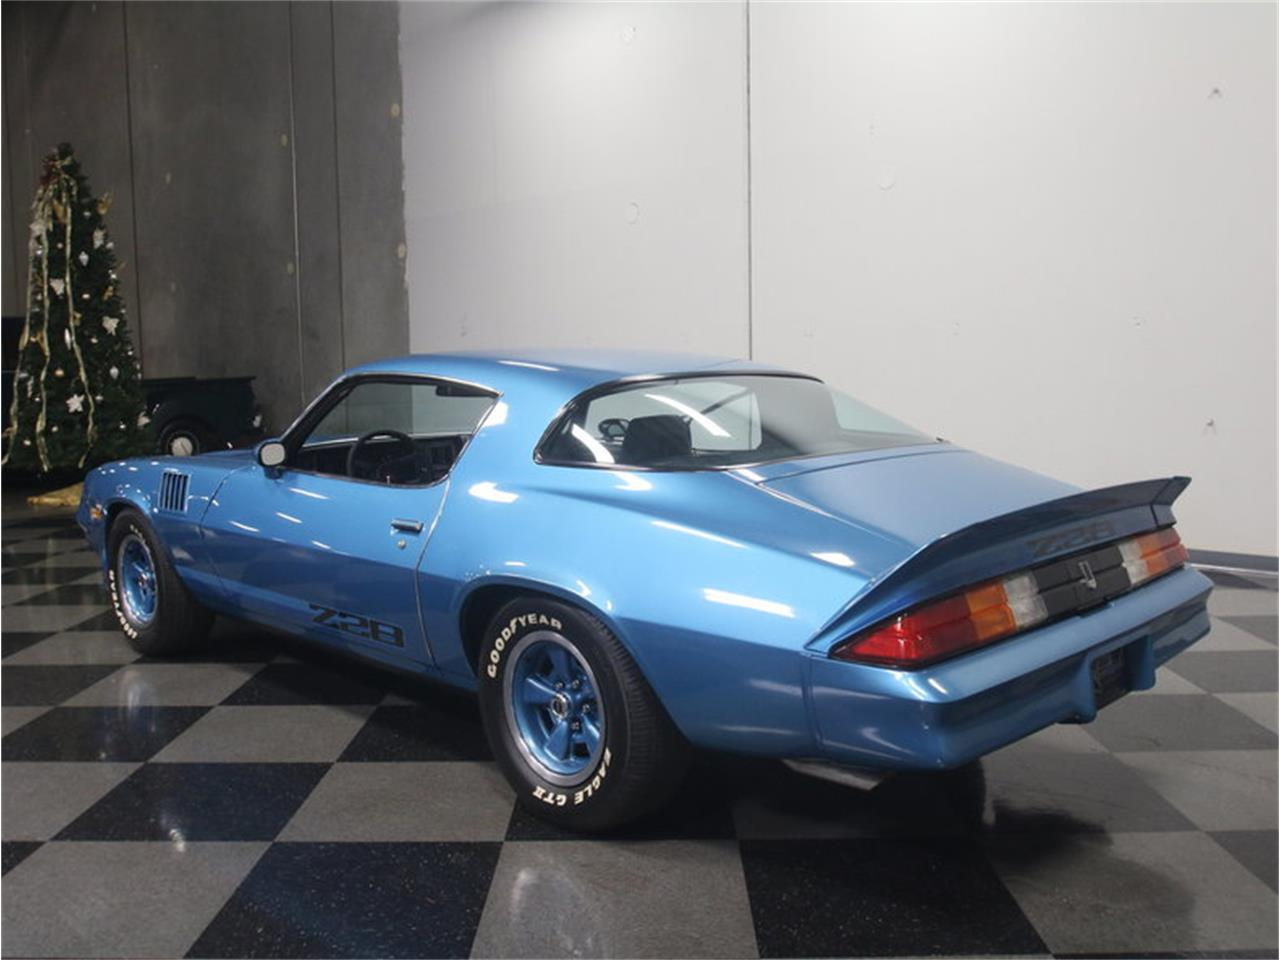 Large Picture of 1979 Chevrolet Camaro Z28 located in Georgia - $34,995.00 Offered by Streetside Classics - Atlanta - MO6L